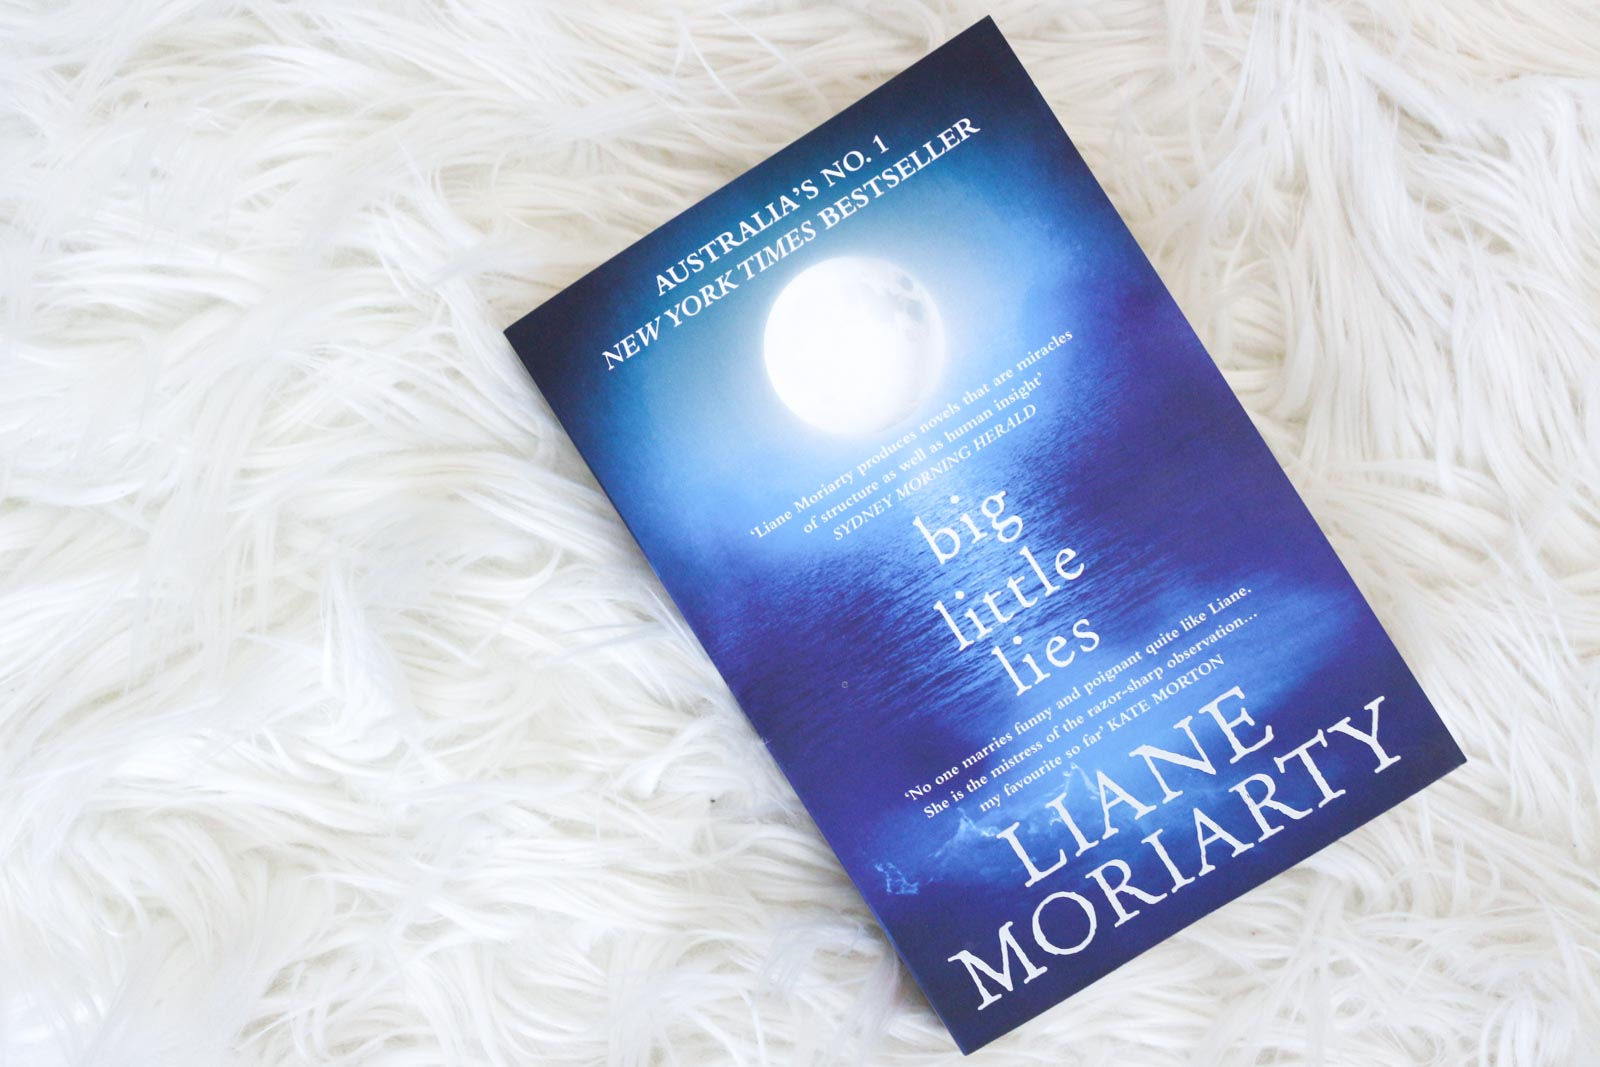 Big Little Lies By Liane Moriarty | The Book Club | Cate Renée